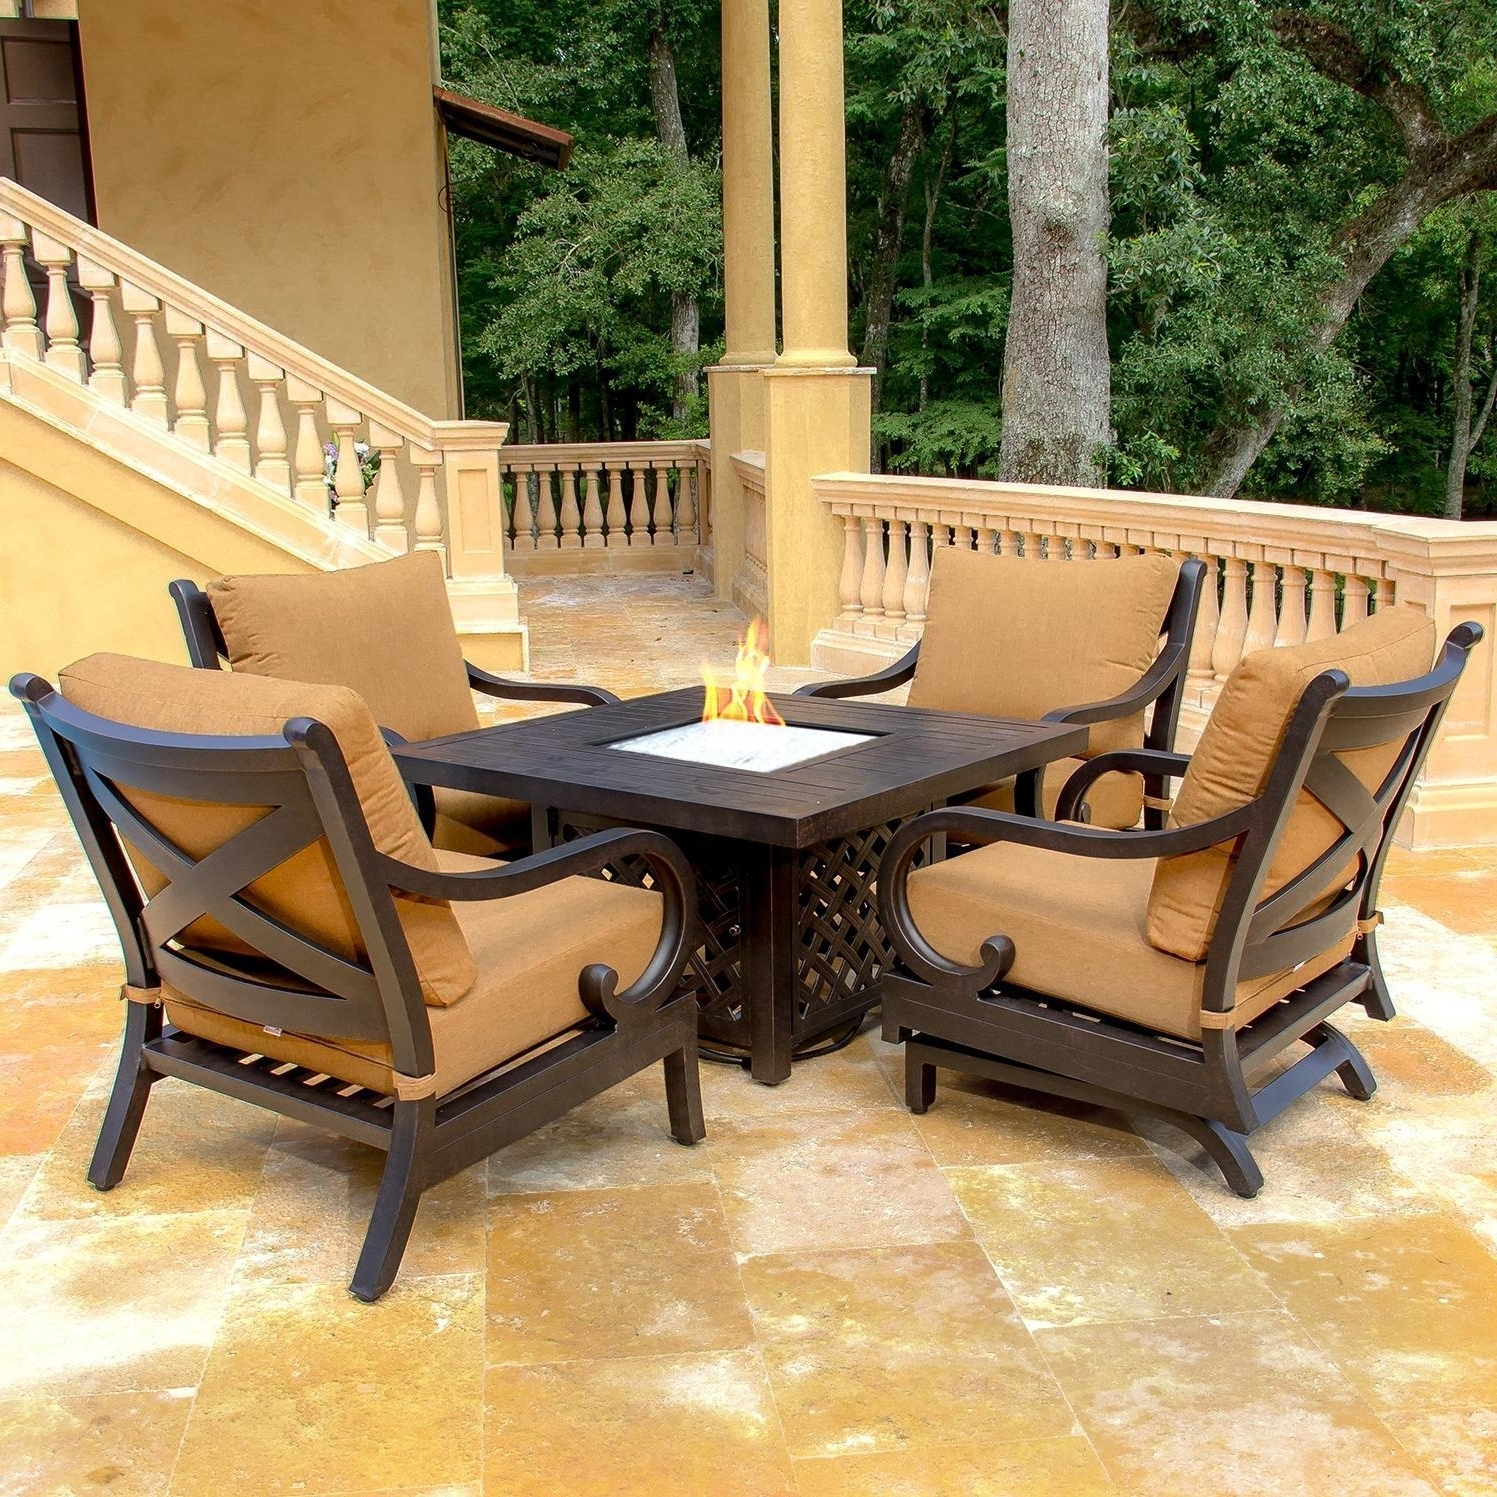 11 Patio Furniture Fire Pit (View 15 of 15)